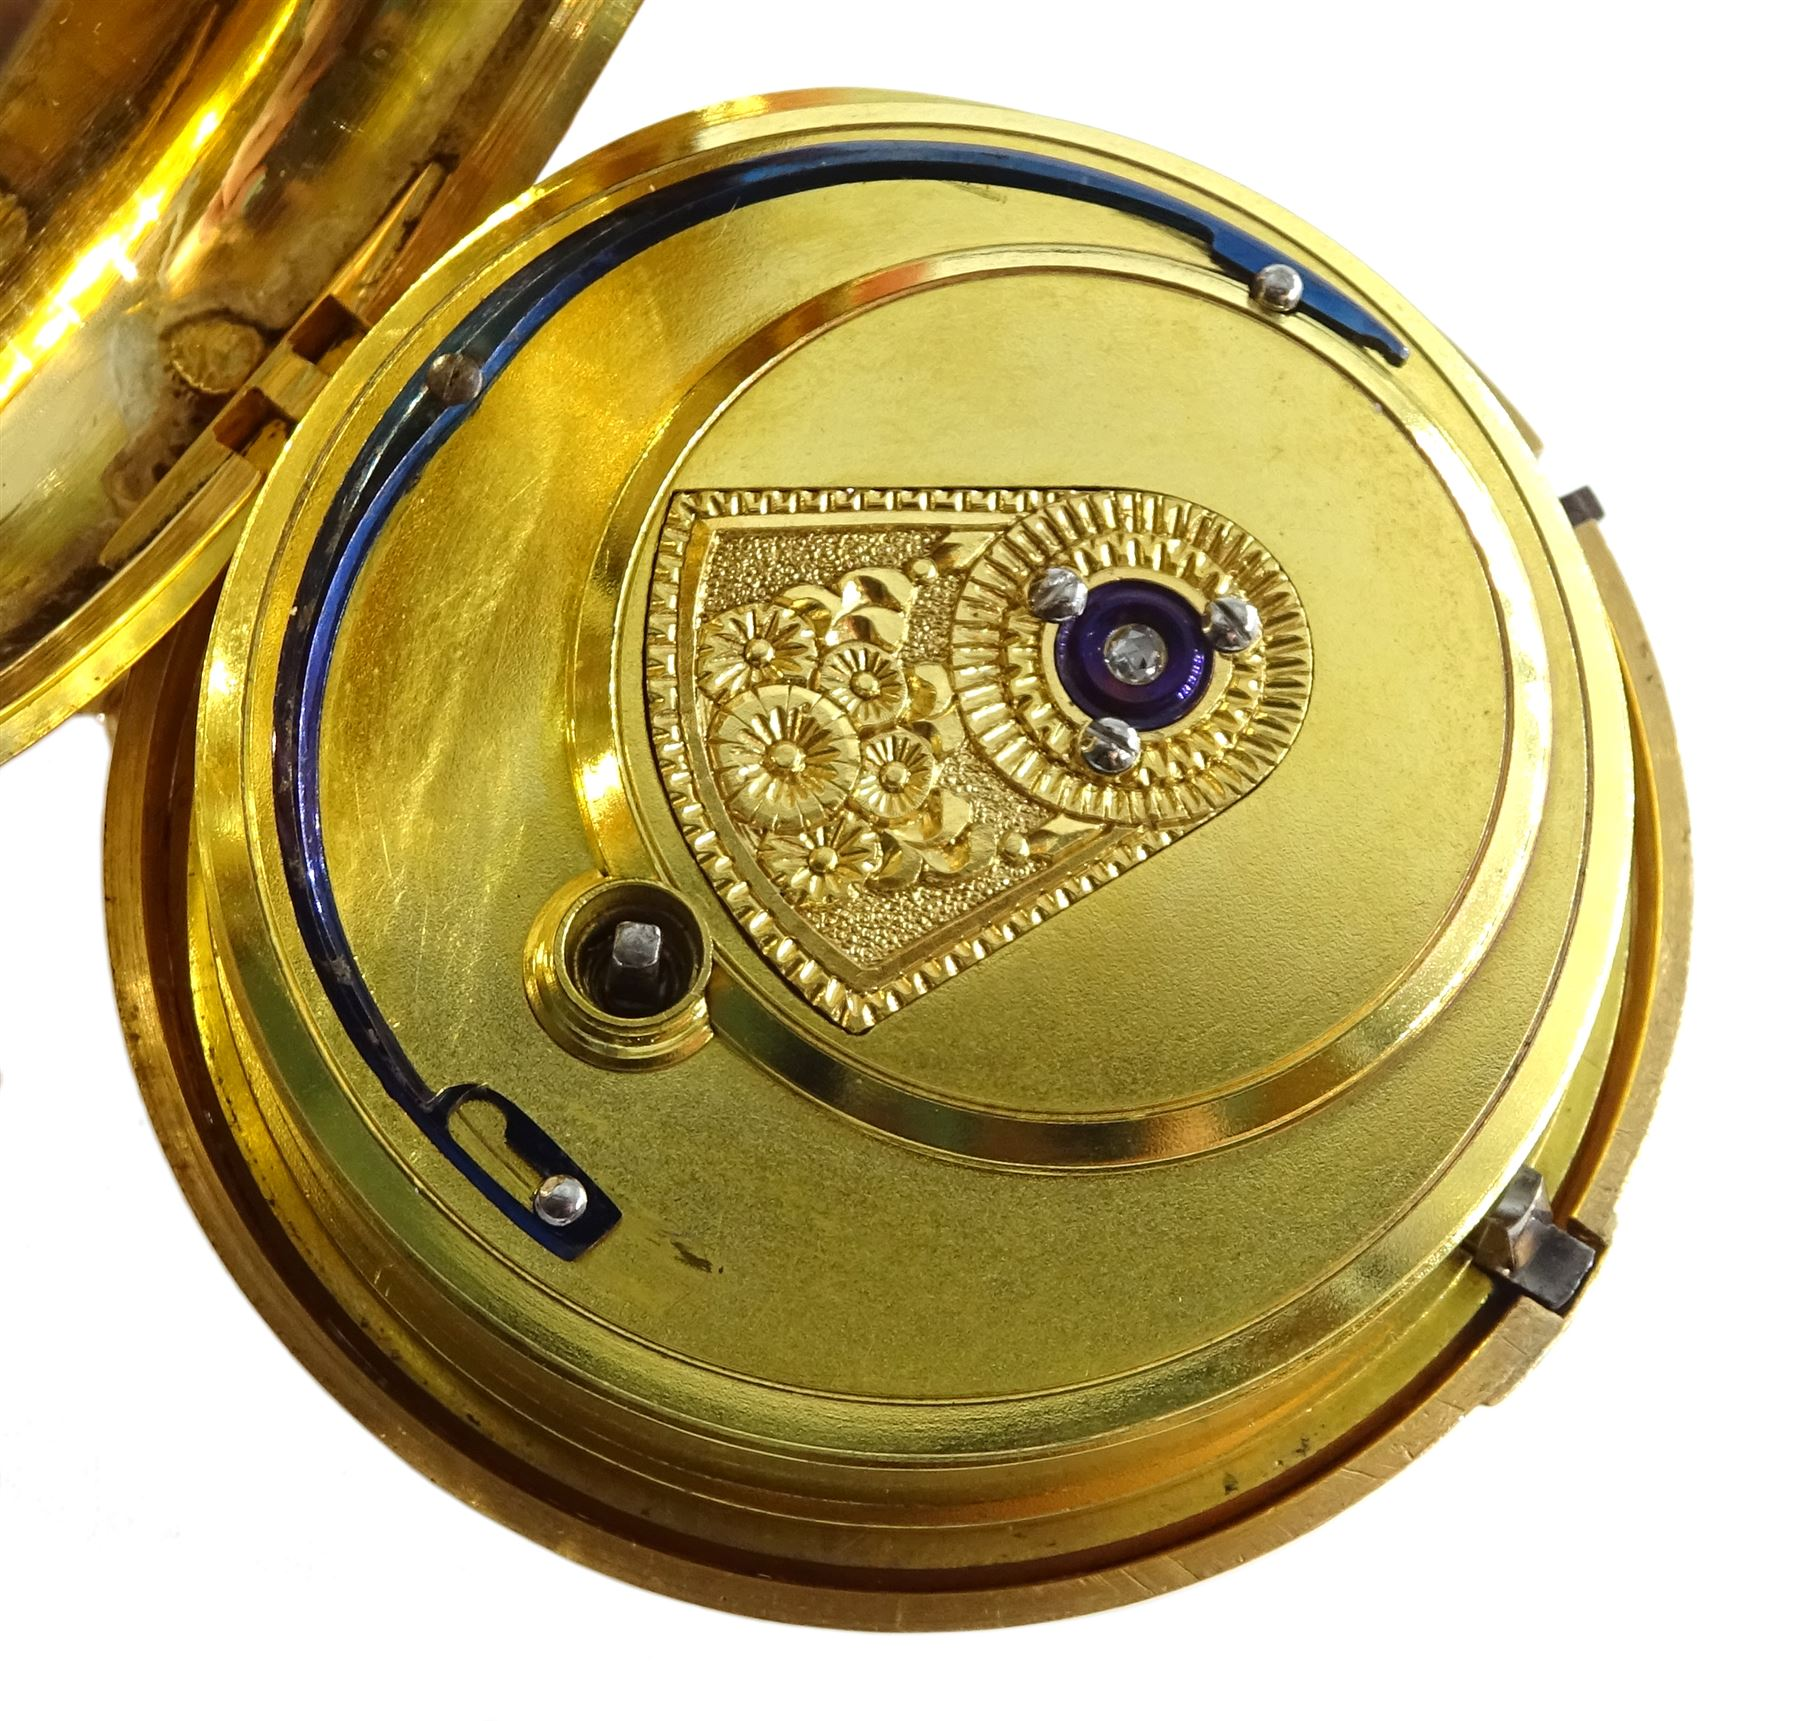 George III 18ct gold pair cased English lever fusee pocket watch by John Bolton - Image 5 of 9